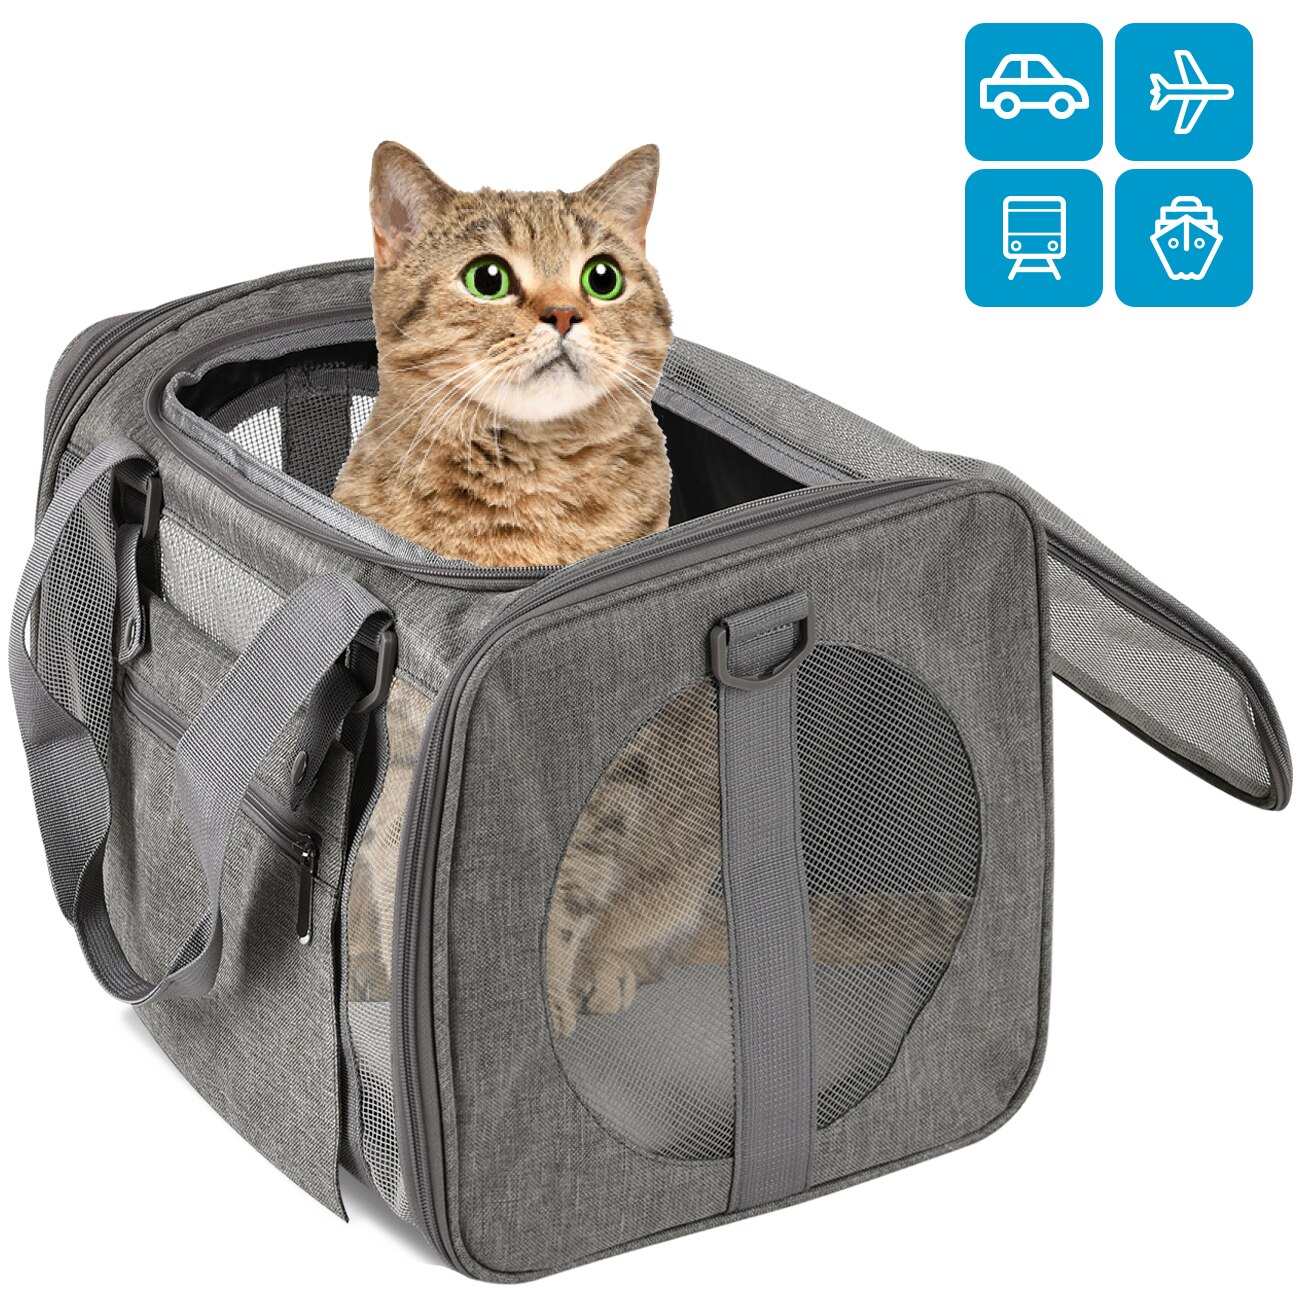 Dog Carrier Travel Car Seat Bags Pet Carriers Portable Backpack Breathable Cat Cage Small Dog Travel Bag Airplane Approved